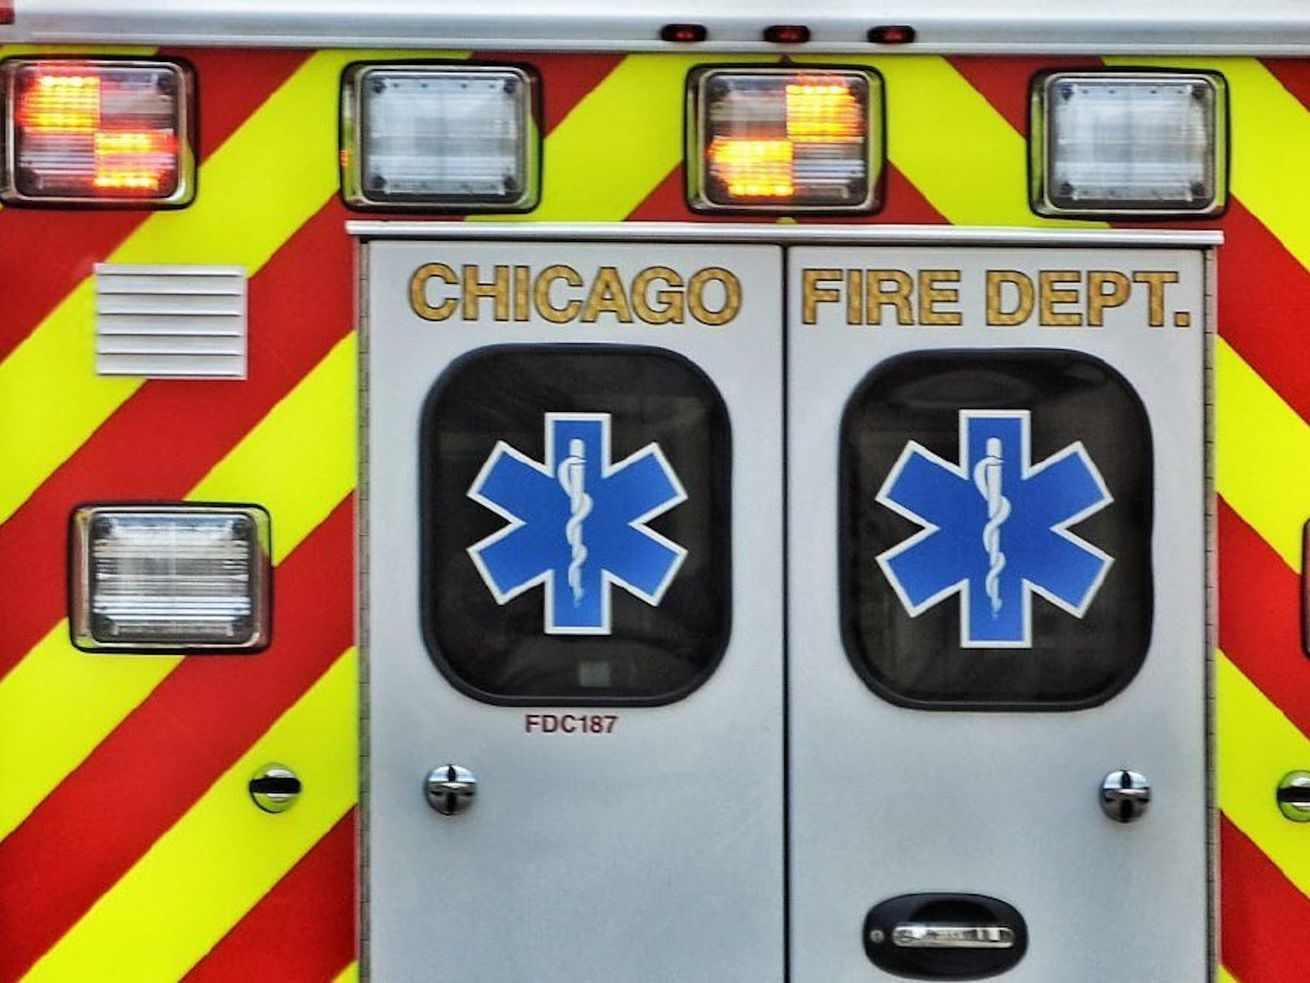 62-year-old woman dies in crash on Dan Ryan